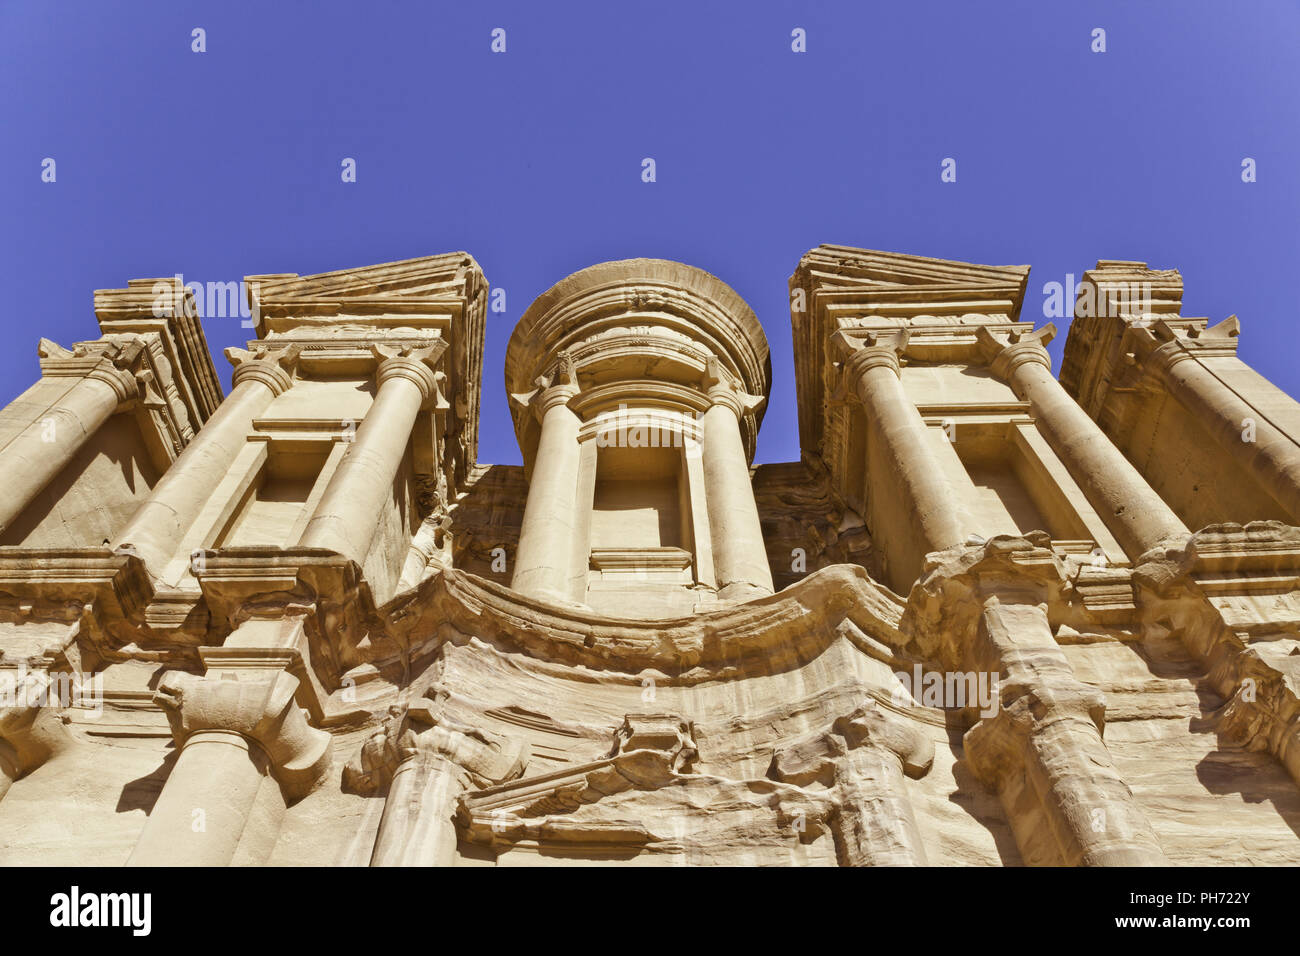 Monastery in ancient nabataeans city of petra - Stock Image